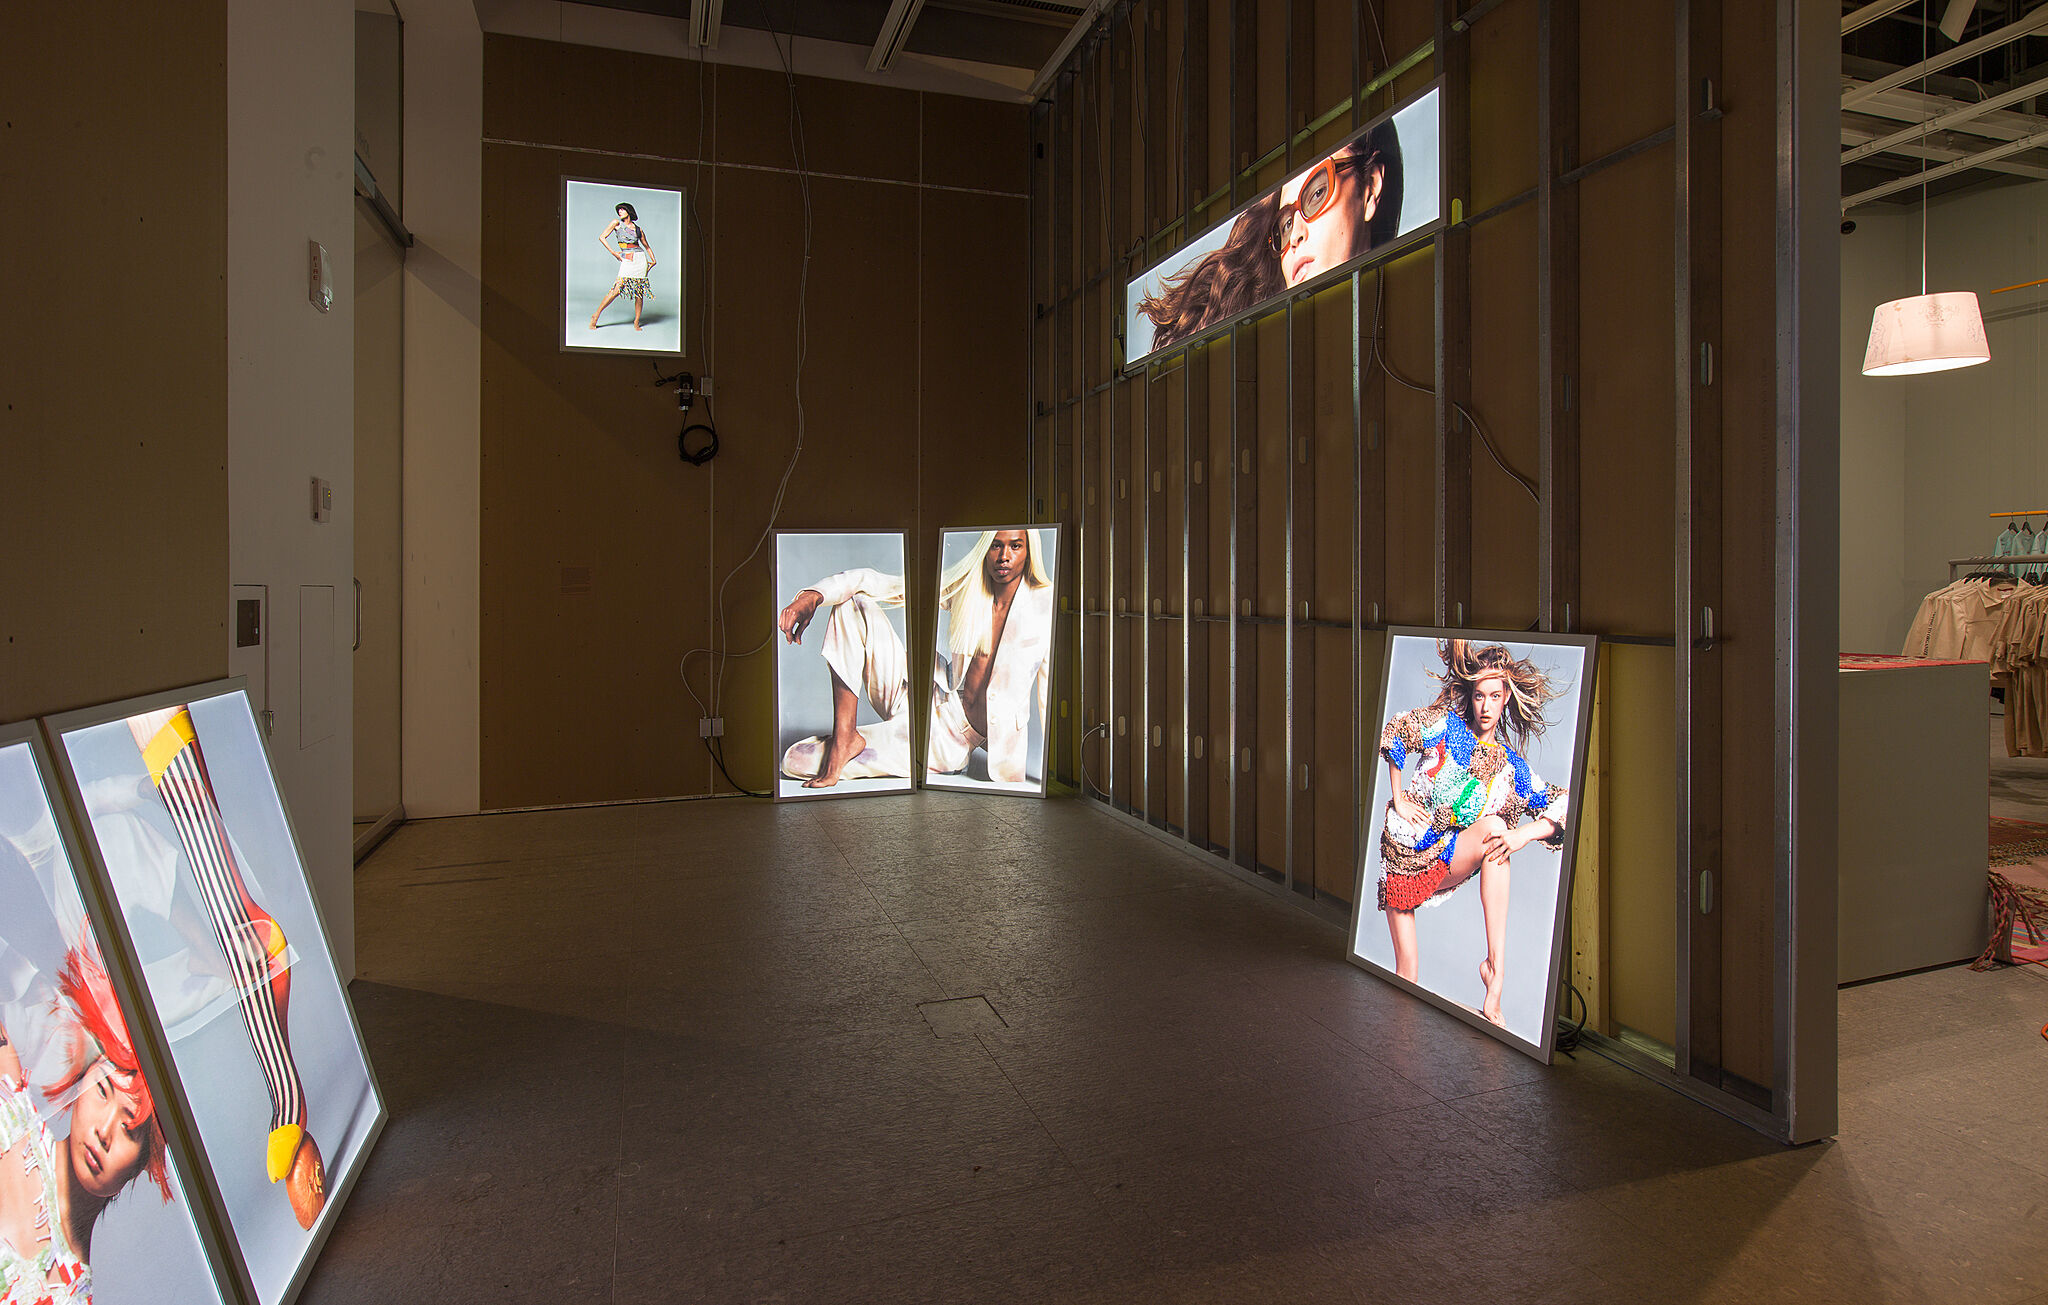 Installation view of Eckhaus Latta: Possessed